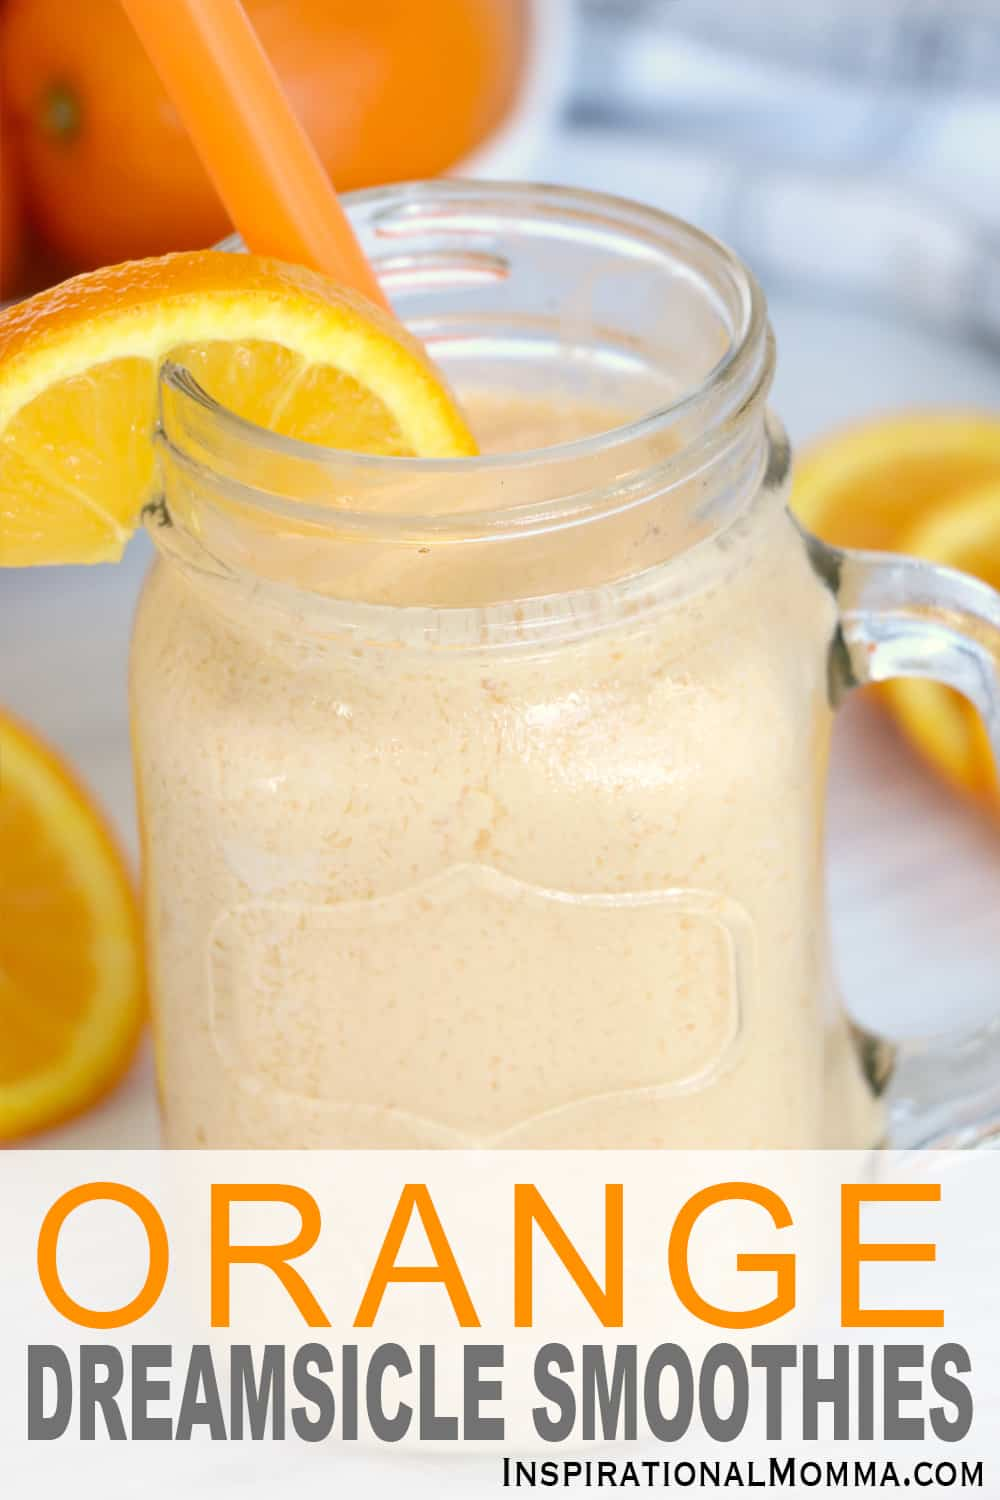 This Orange Dreamsicle Smoothie is cool, refreshing, and oh so delicious! It is guaranteed to leave you satisfied and wanting more! #inspirationalmomma #orangedreamsiclesmoothie #smoothie #drink #smoothies #orange #recipe